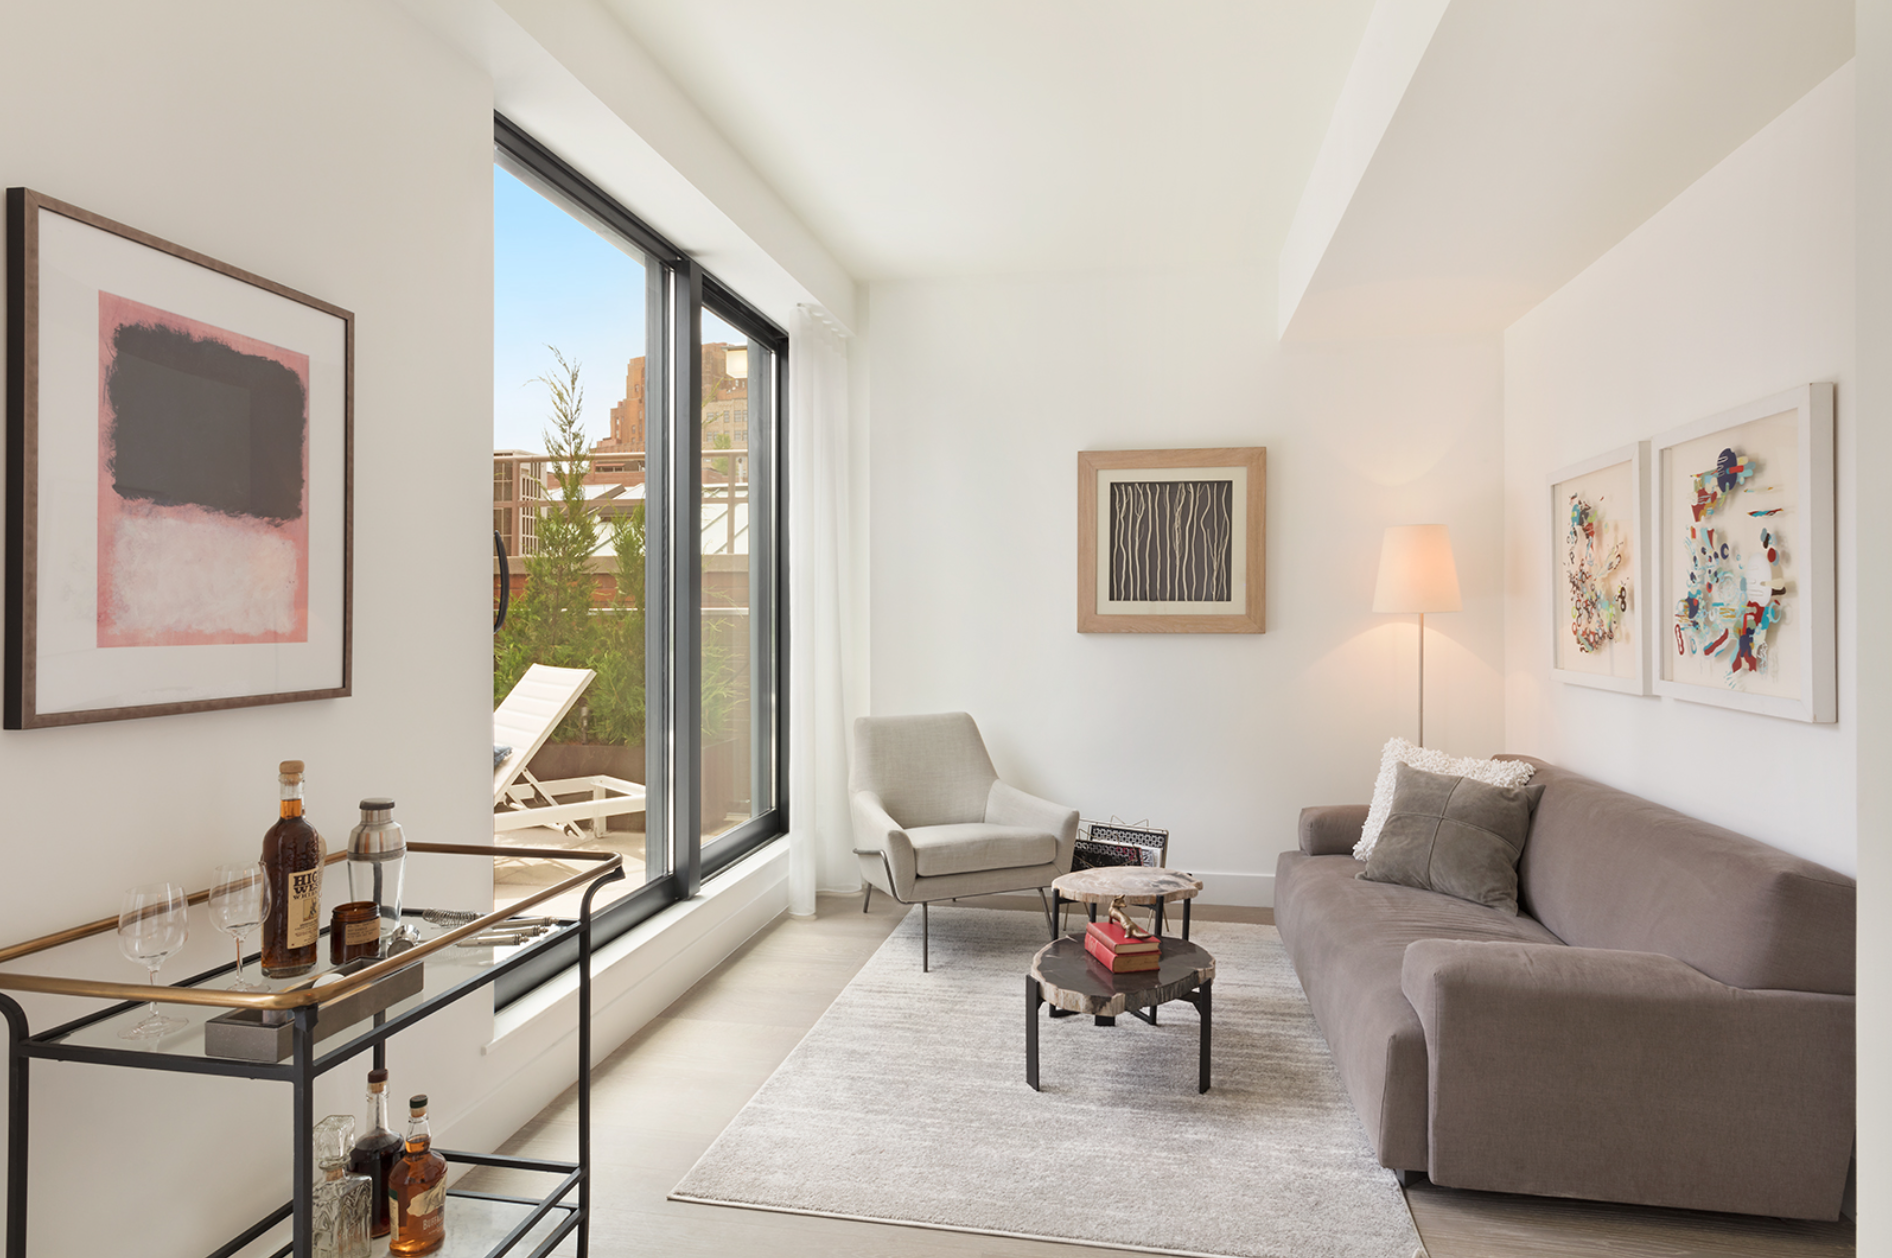 Tour The Rare, Luxe Tribeca Penthouse Atop The Morris Adjmi-Designed 403 Greenwich Street